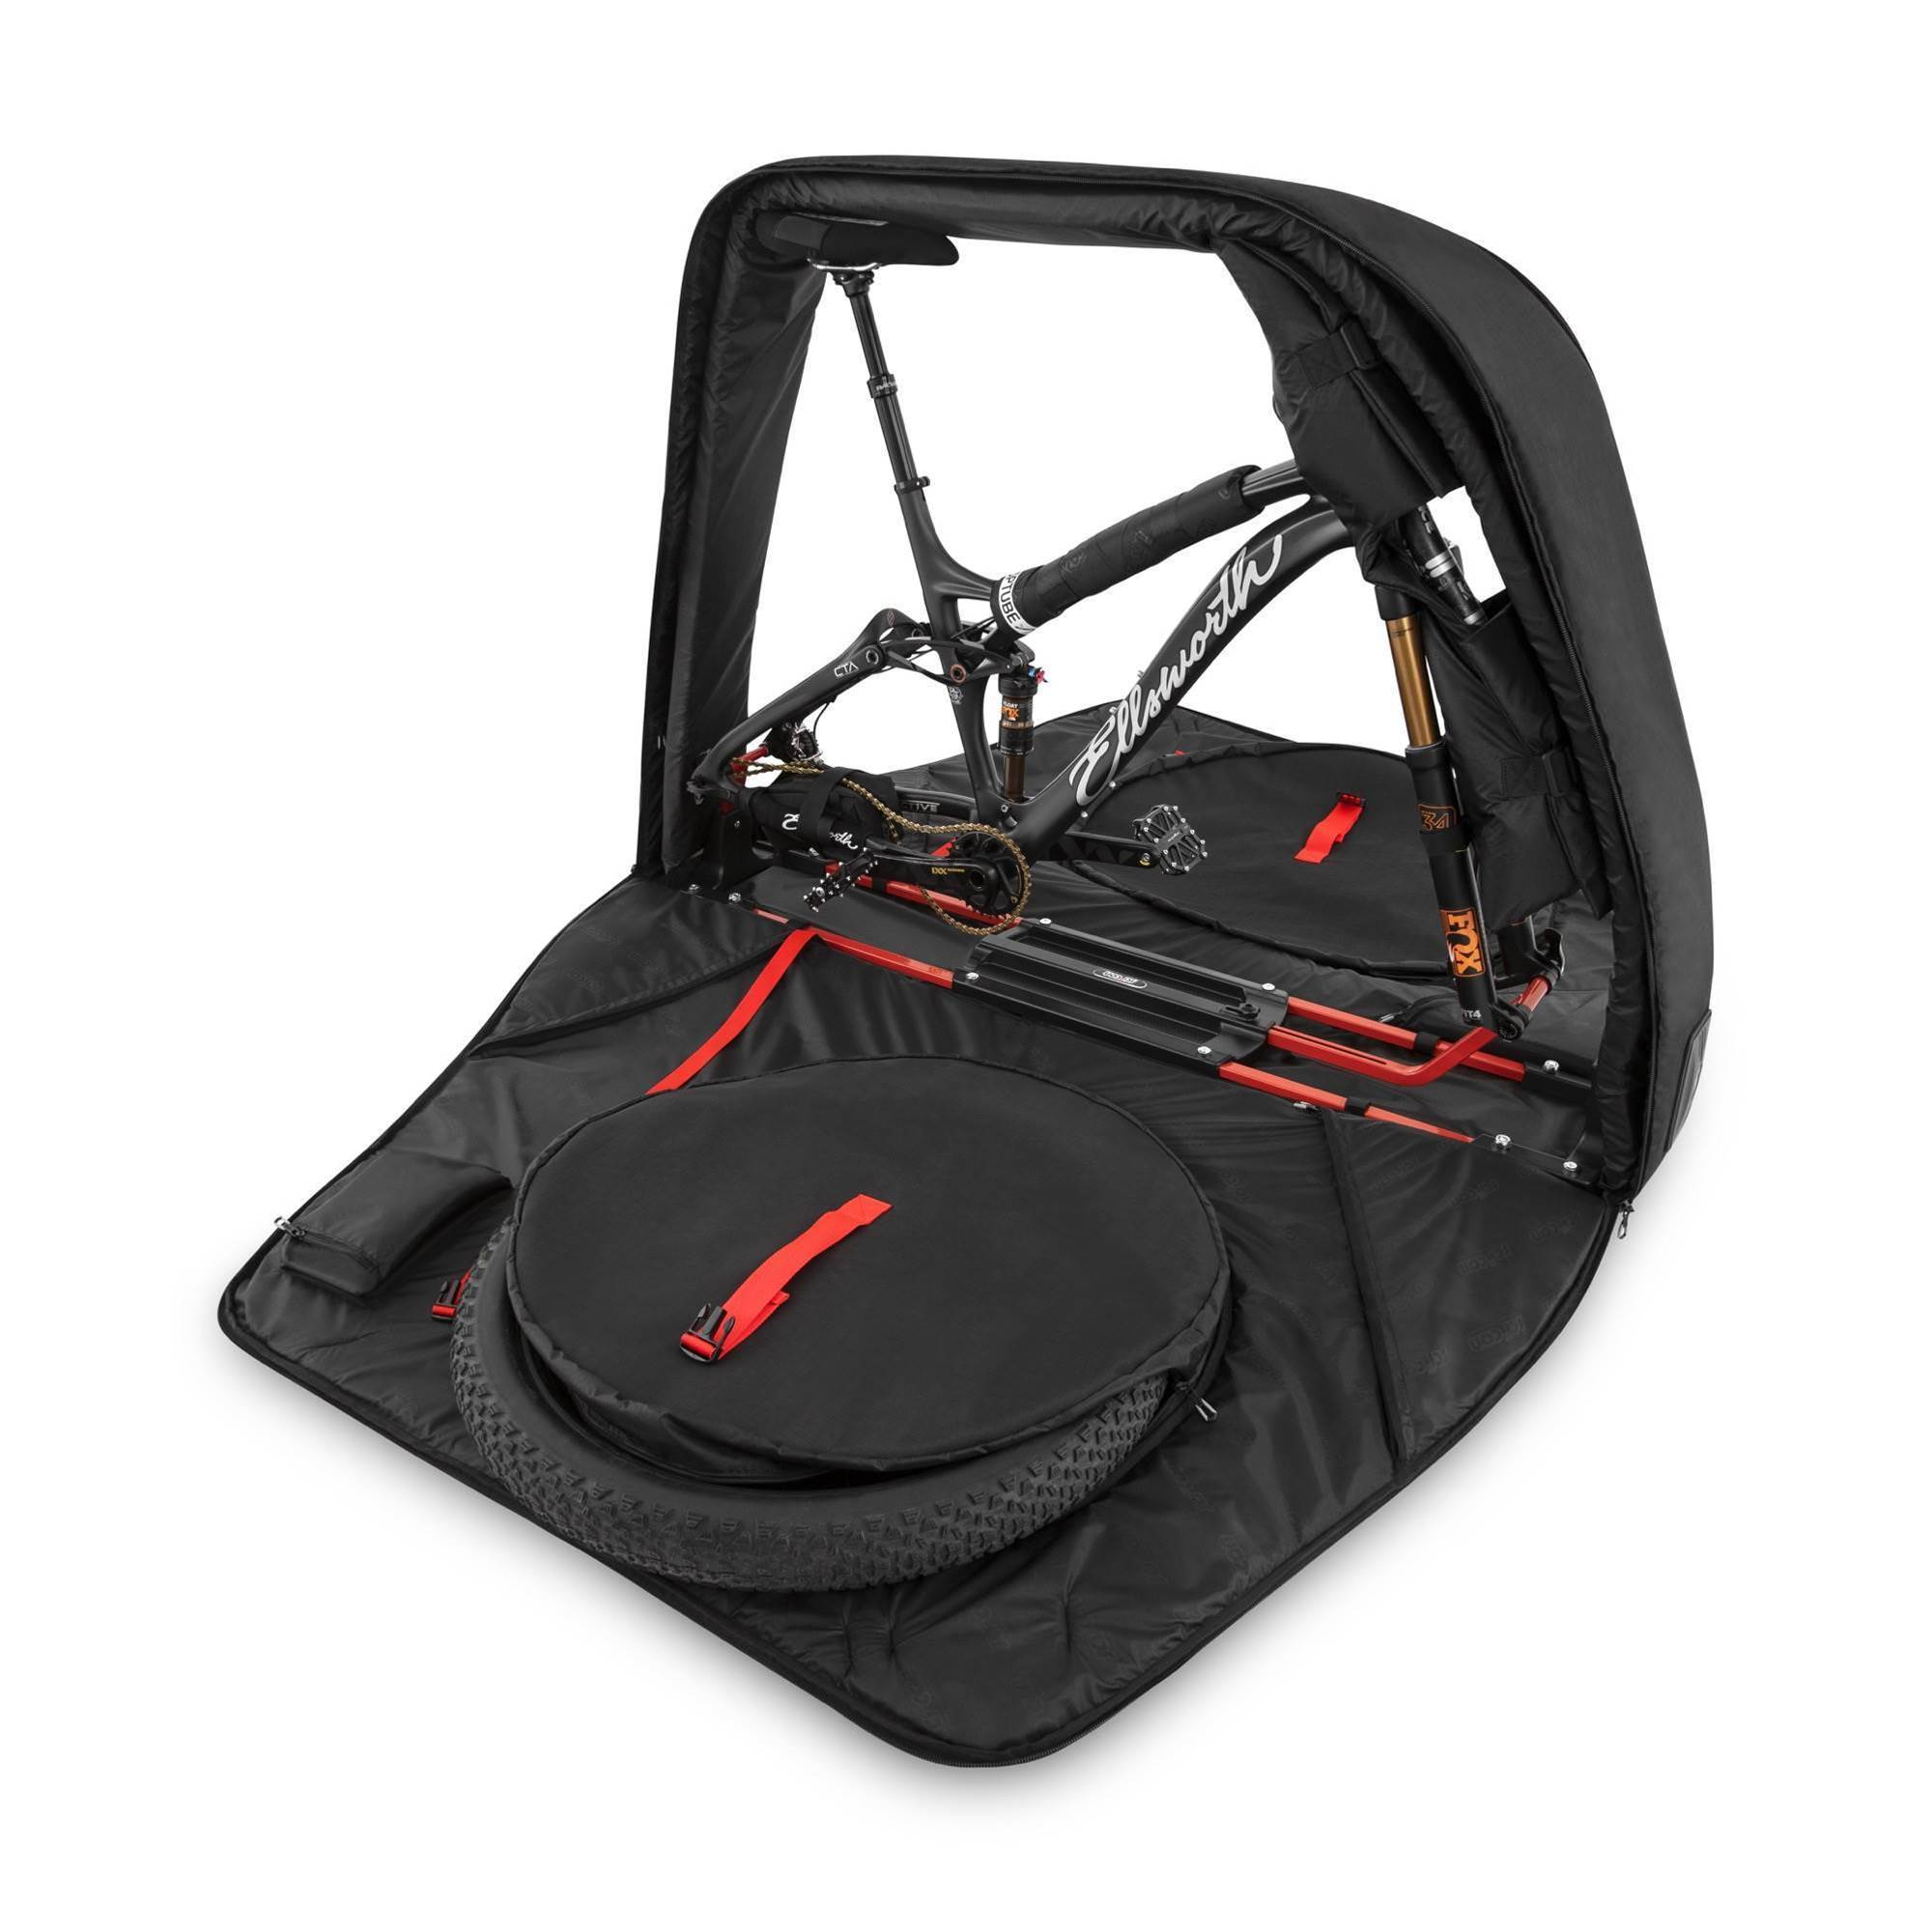 Scicon release a trail bike friendly bike bag